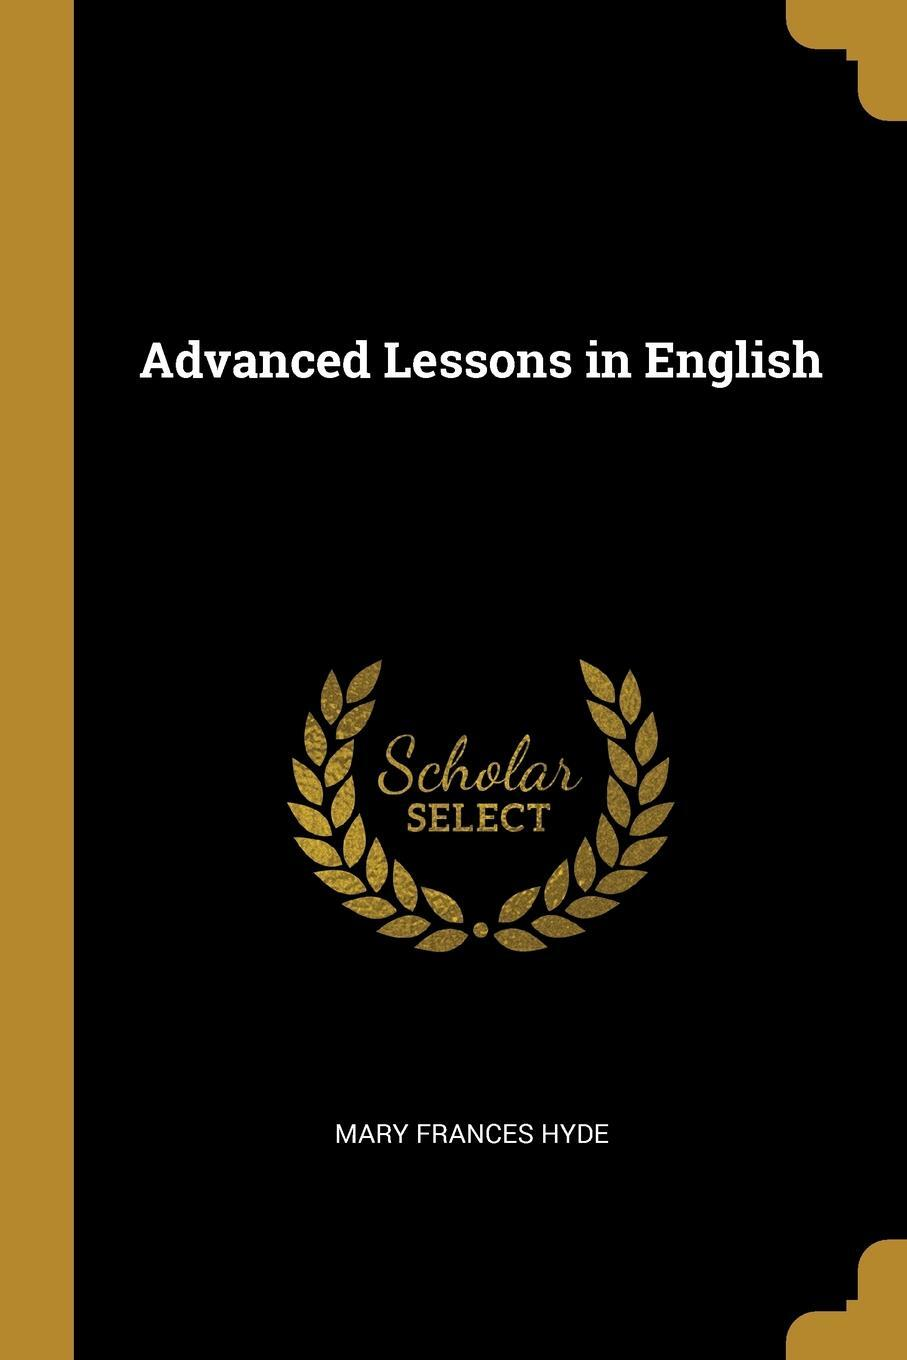 Advanced Lessons in English. Mary Frances Hyde